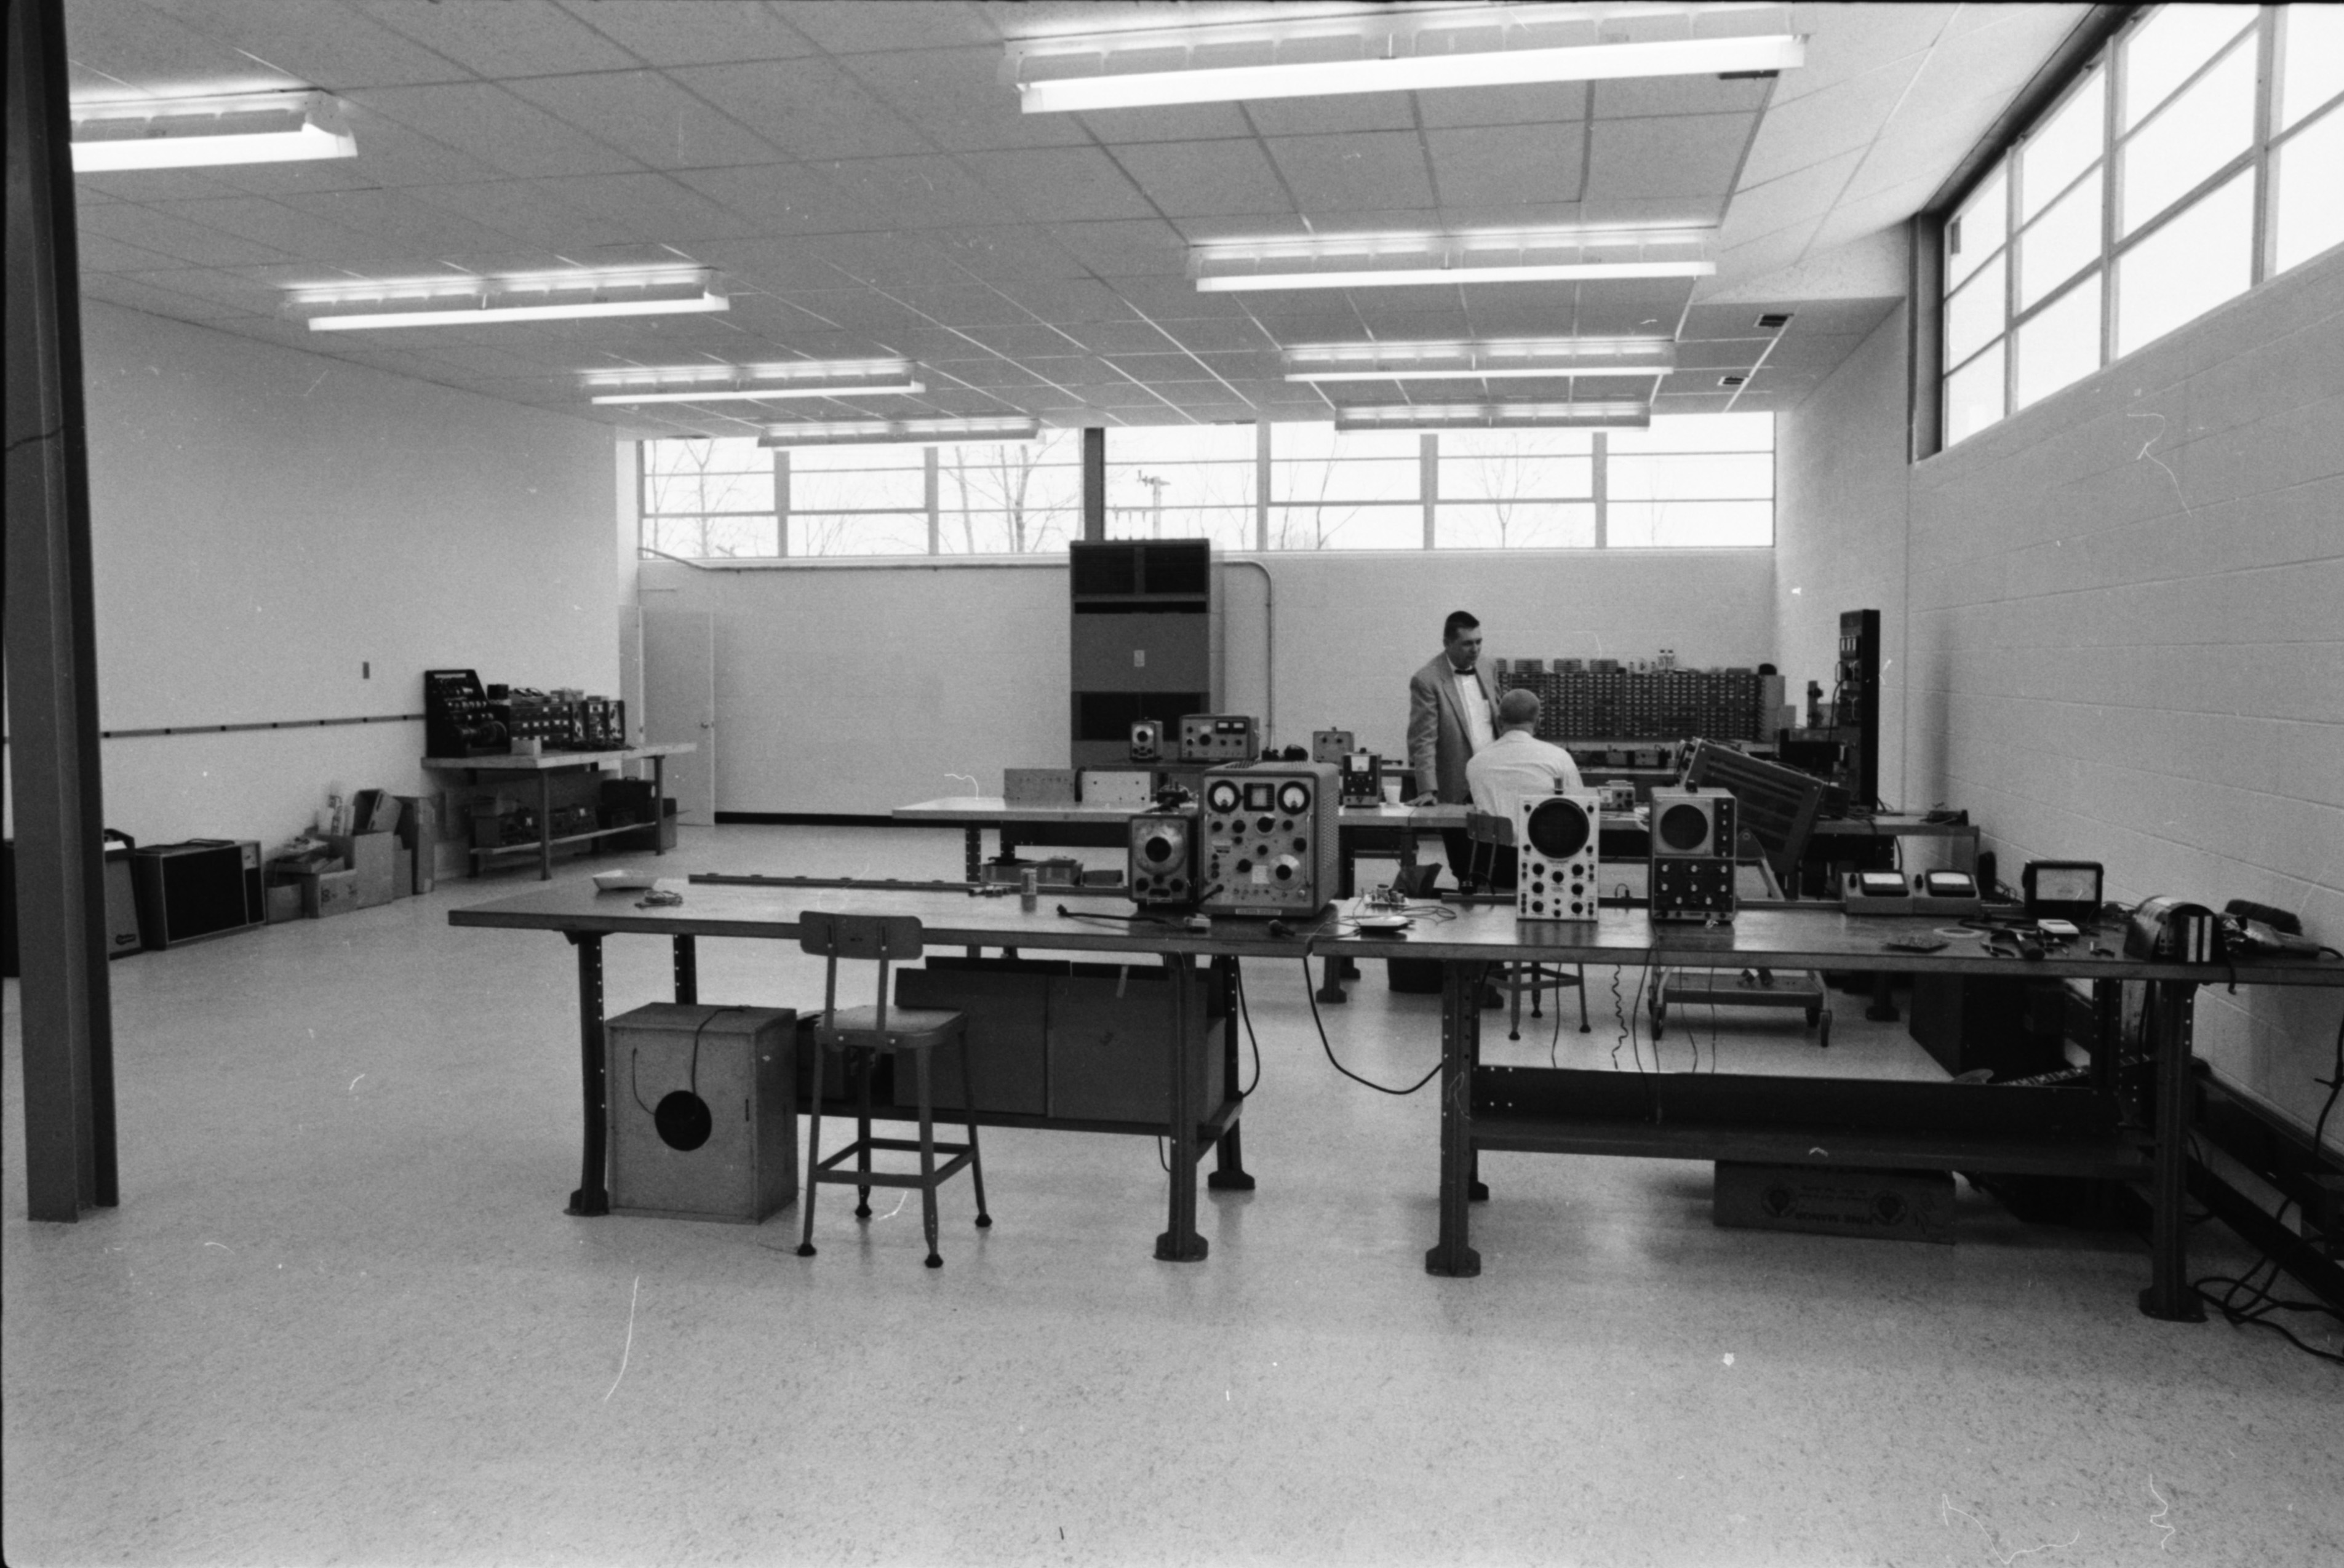 Berry Electronics Division Lab at Ann Arbor Research Park, February 1965 image